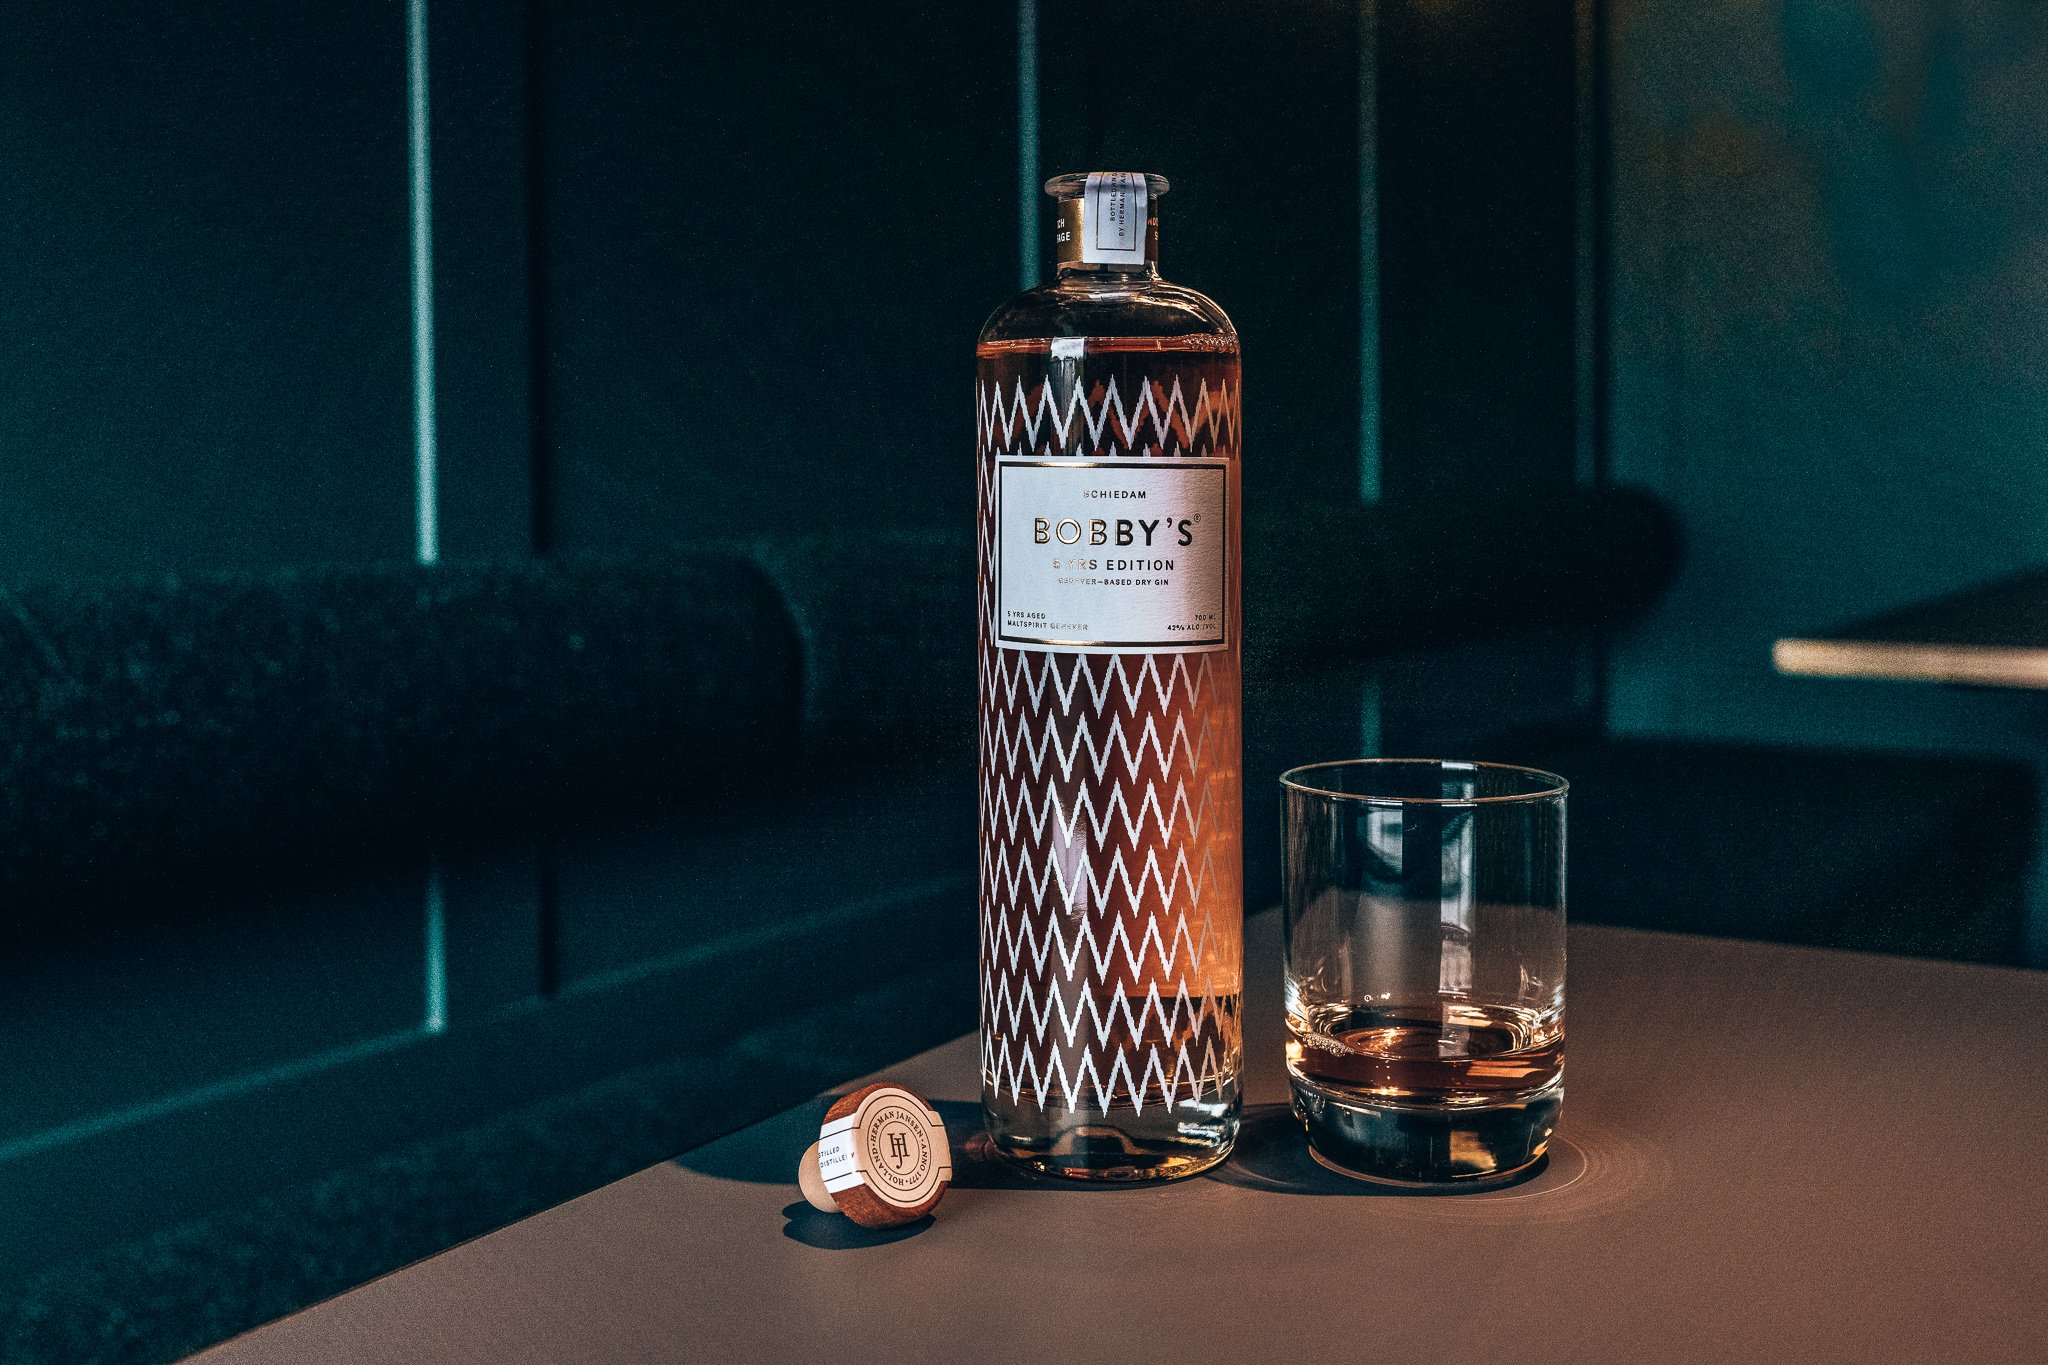 Bobby's Gin 5 years, Alles over gin.